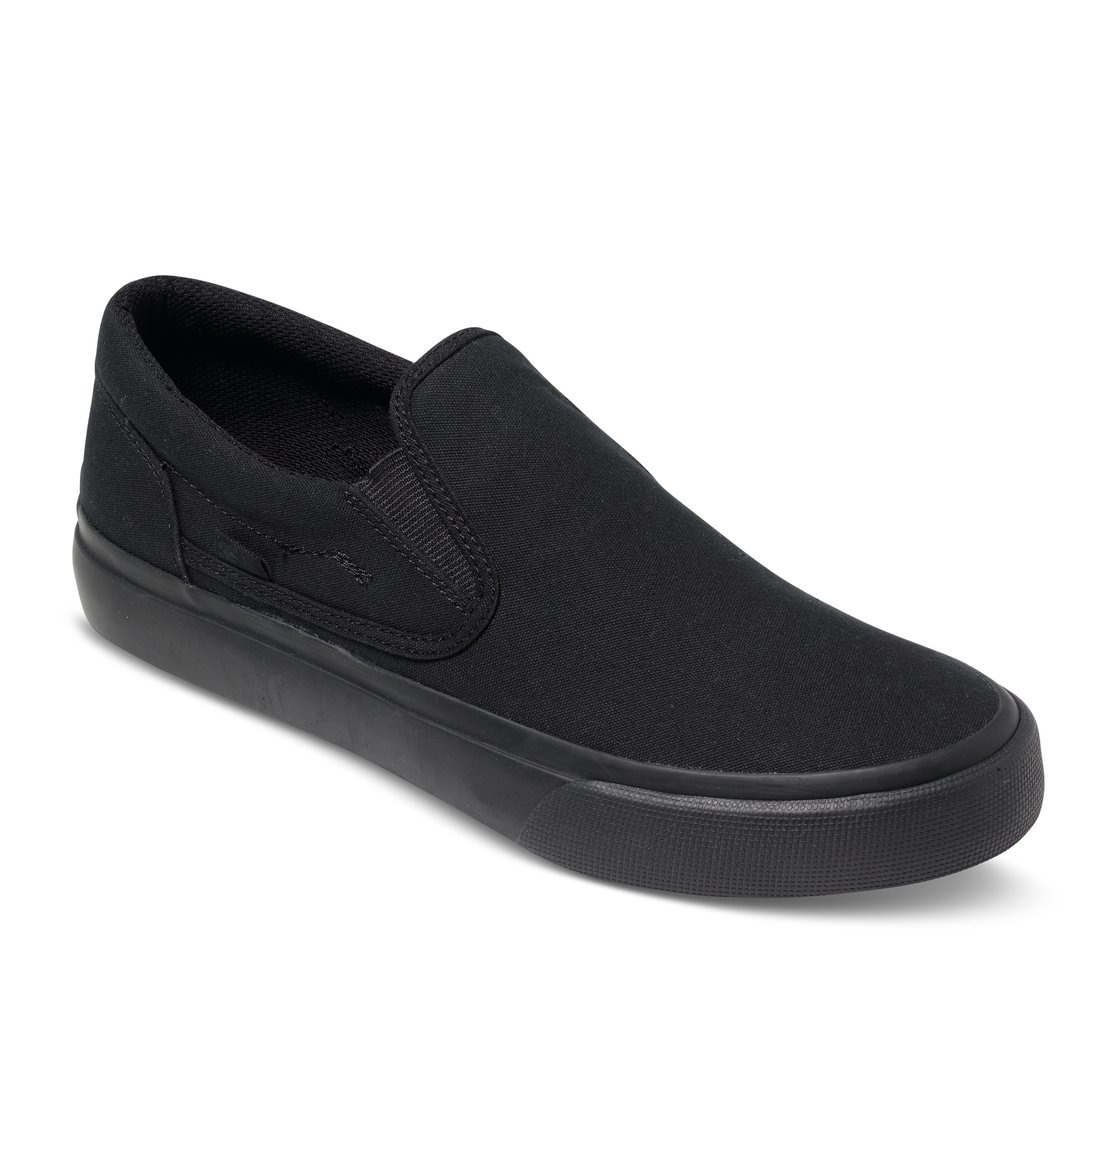 trase slip on shoes adys300184 dc shoes